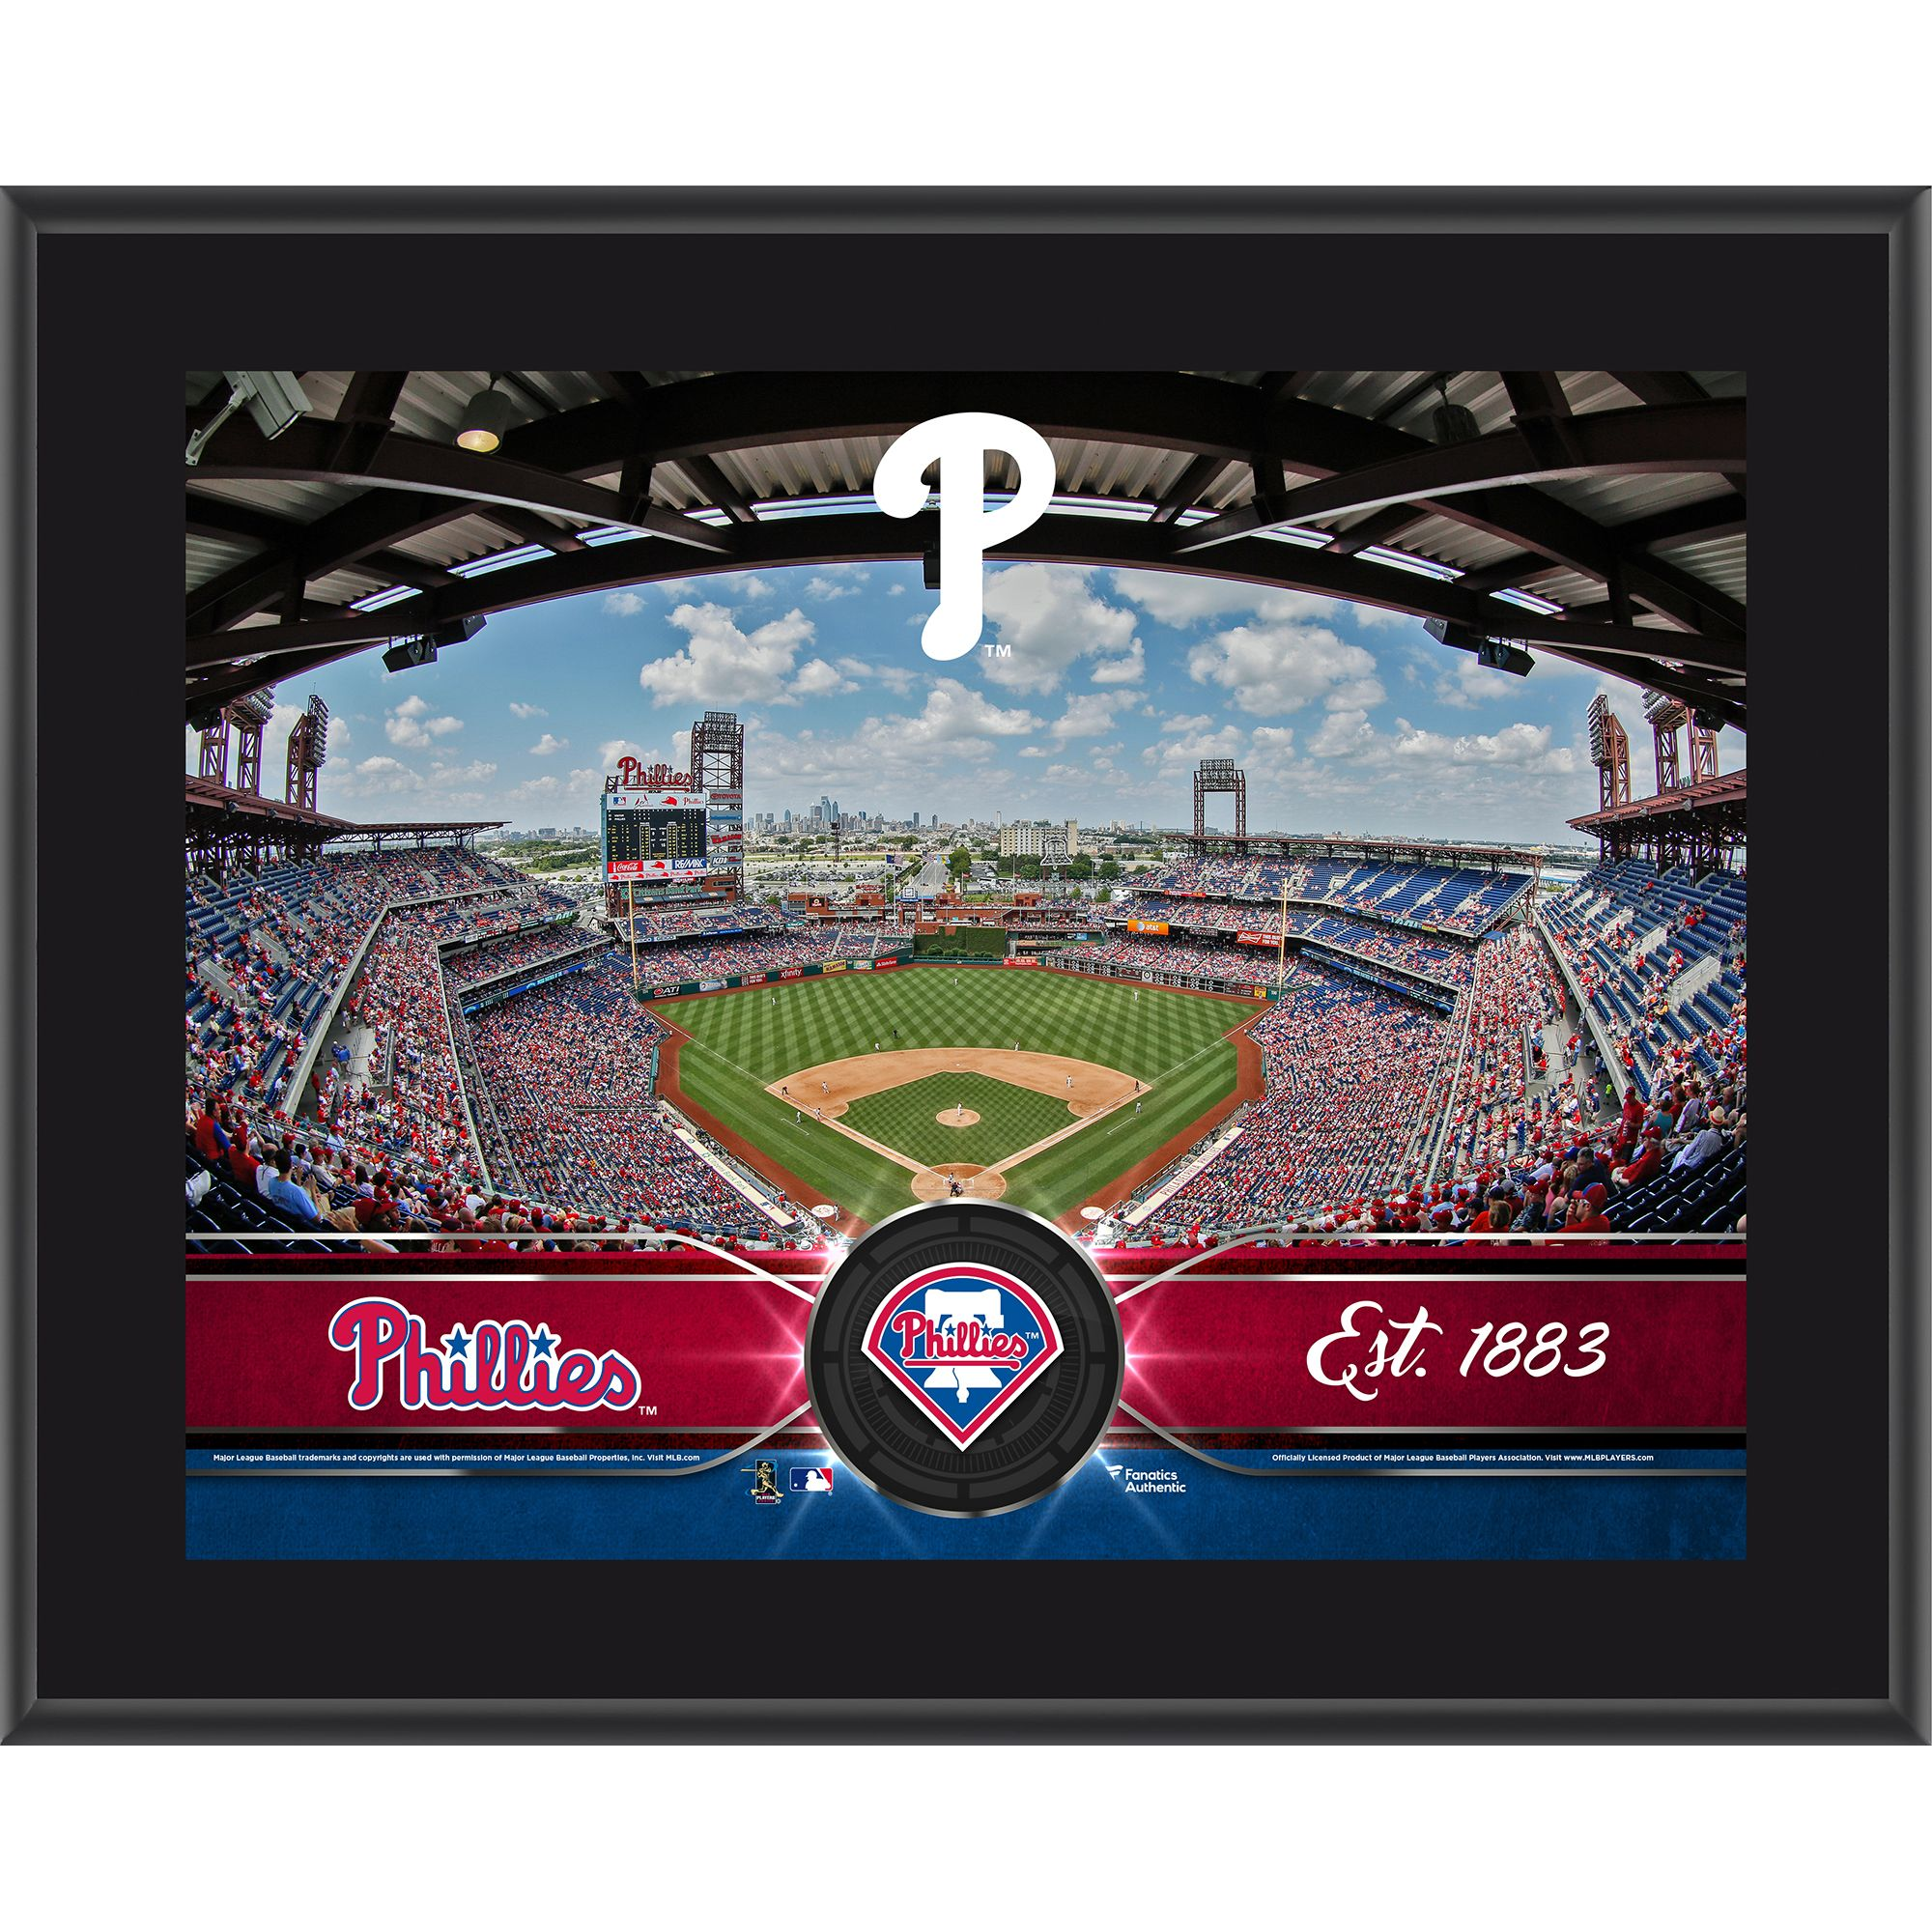 "Philadelphia Phillies Fanatics Authentic 10.5"" x 13"" Sublimated Team Plaque - No Size"